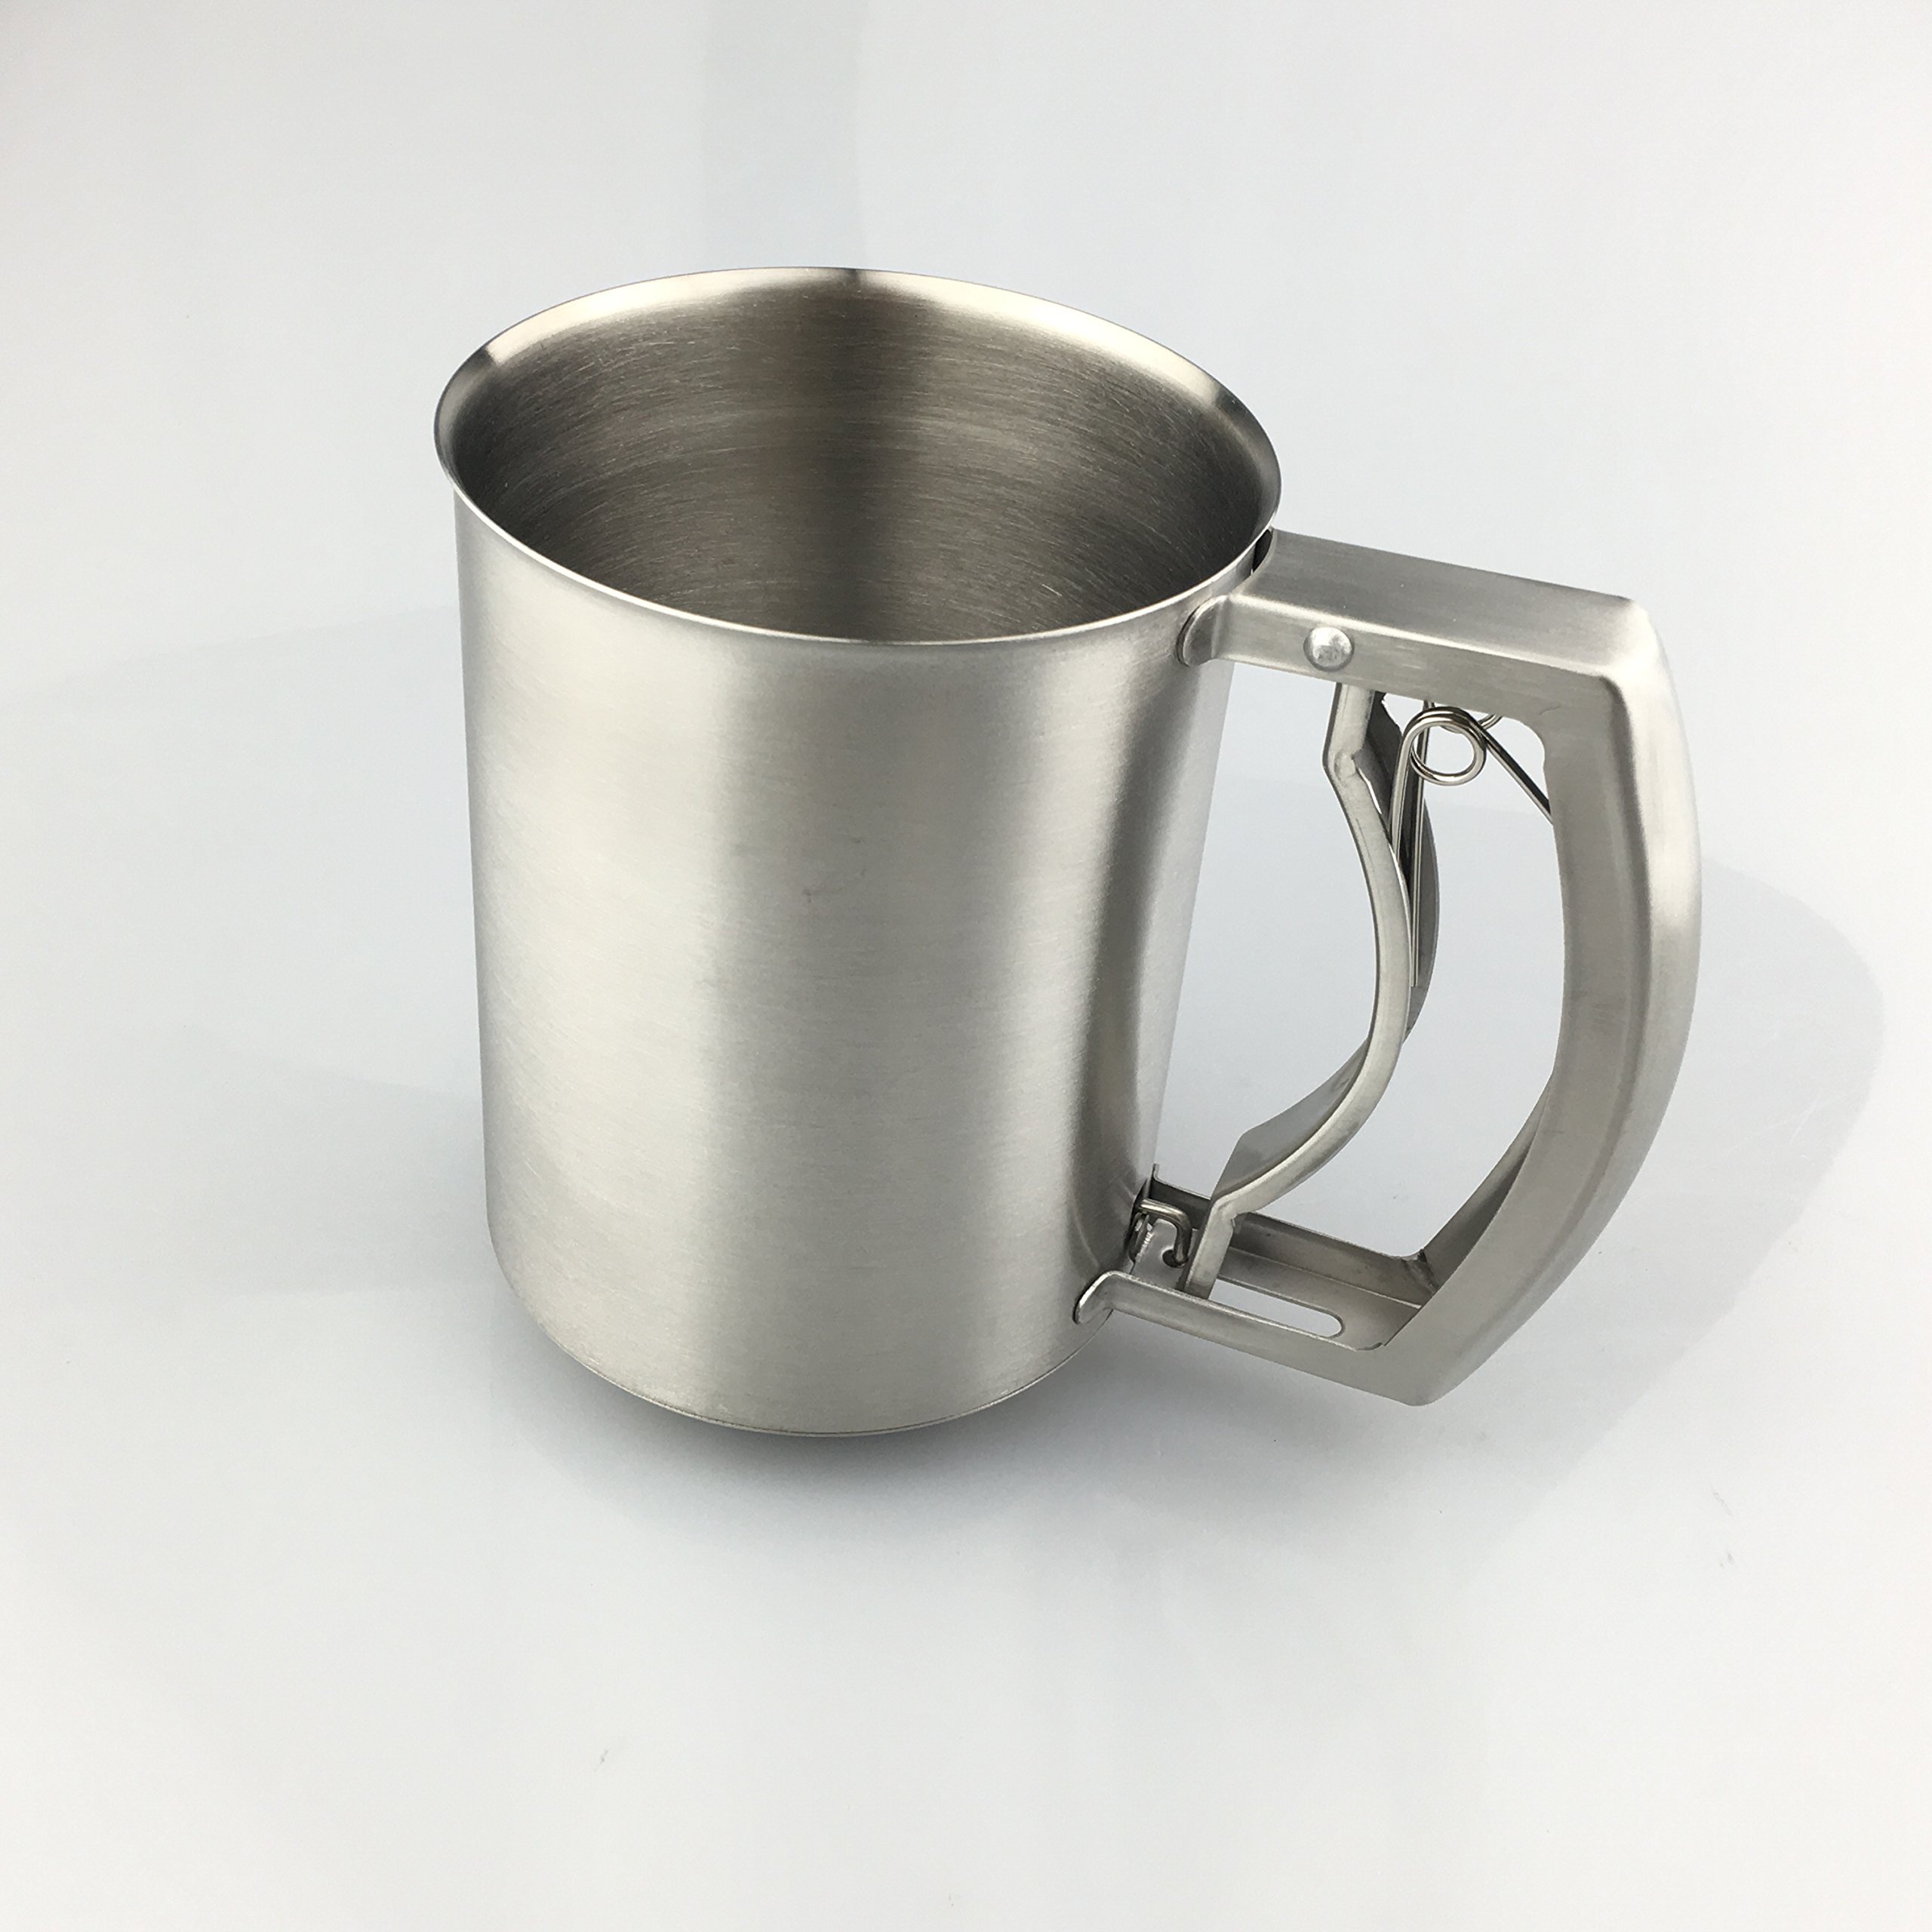 i KiTo 3 Cup Flour Sifter Hand Extrusion 3 Triple-layer Powder Sieve,0.8mm Thick Stainless Steel